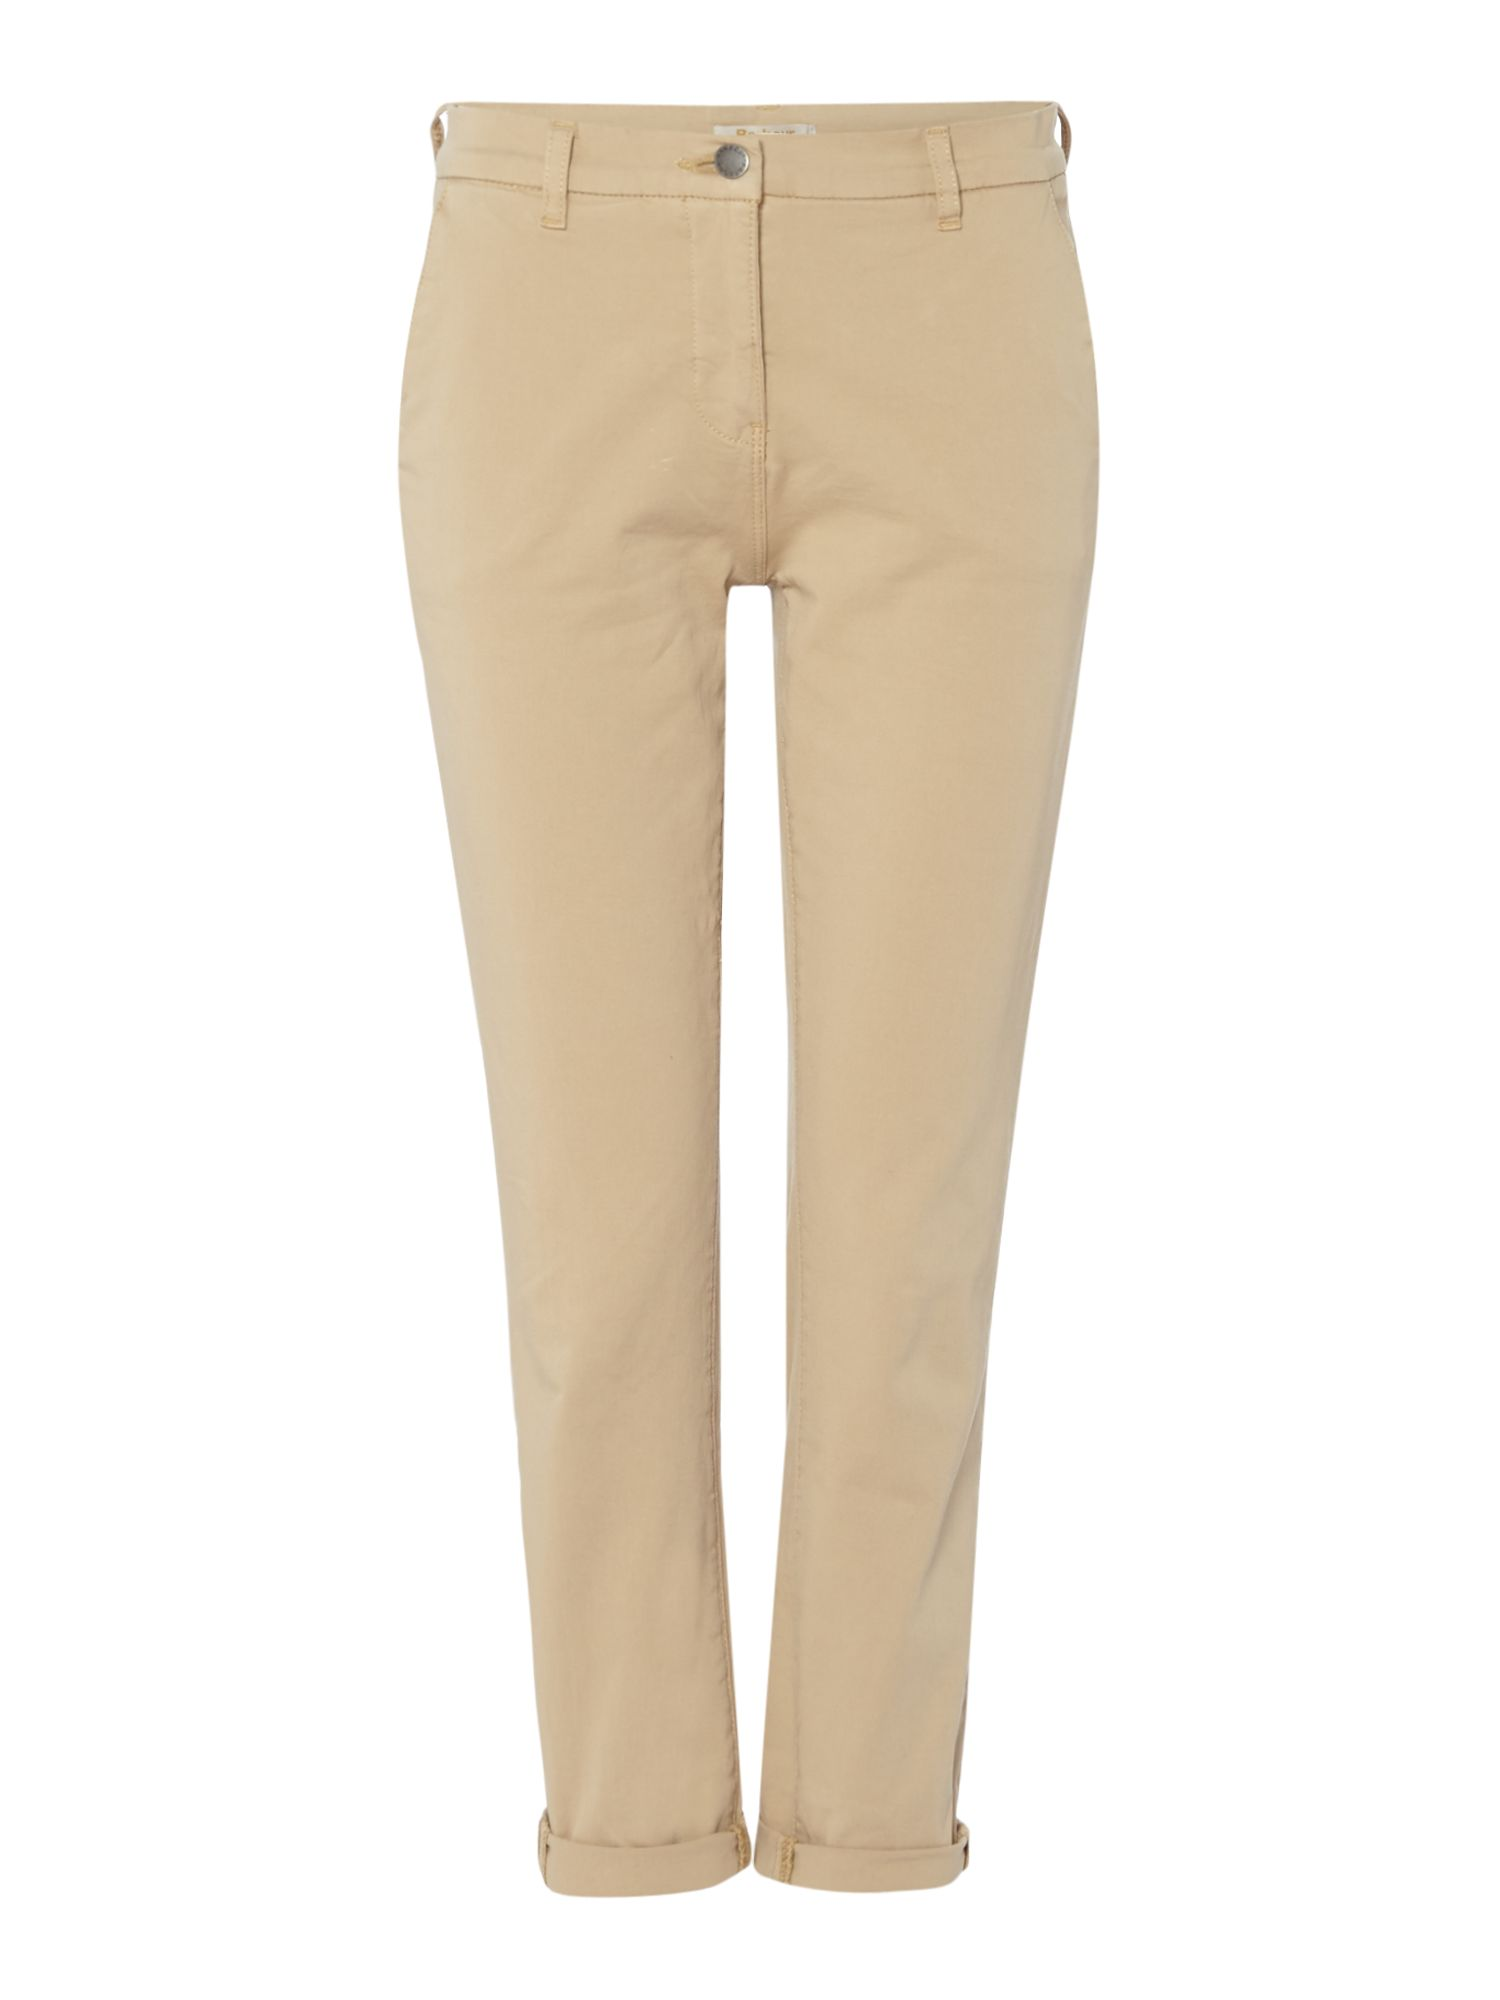 Barbour Cropped Turn Up Eiko Chino Trousers, Stone